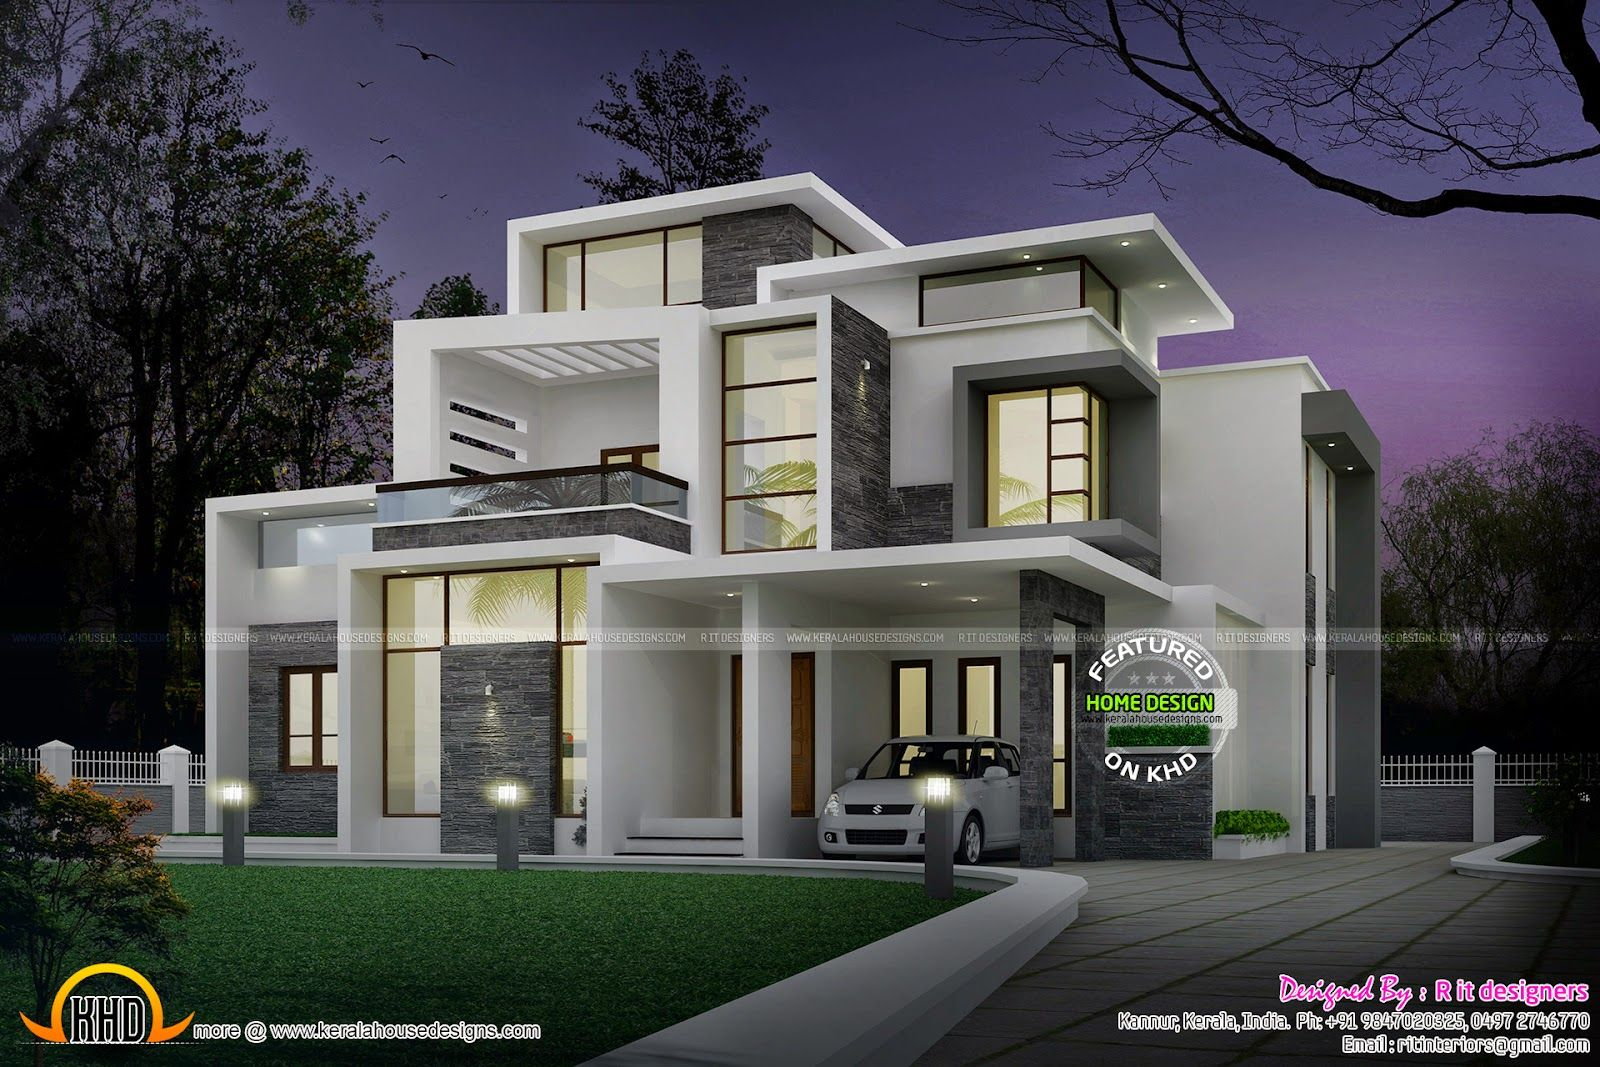 Grand contemporary home design kerala home design and for Contemporary house in kerala